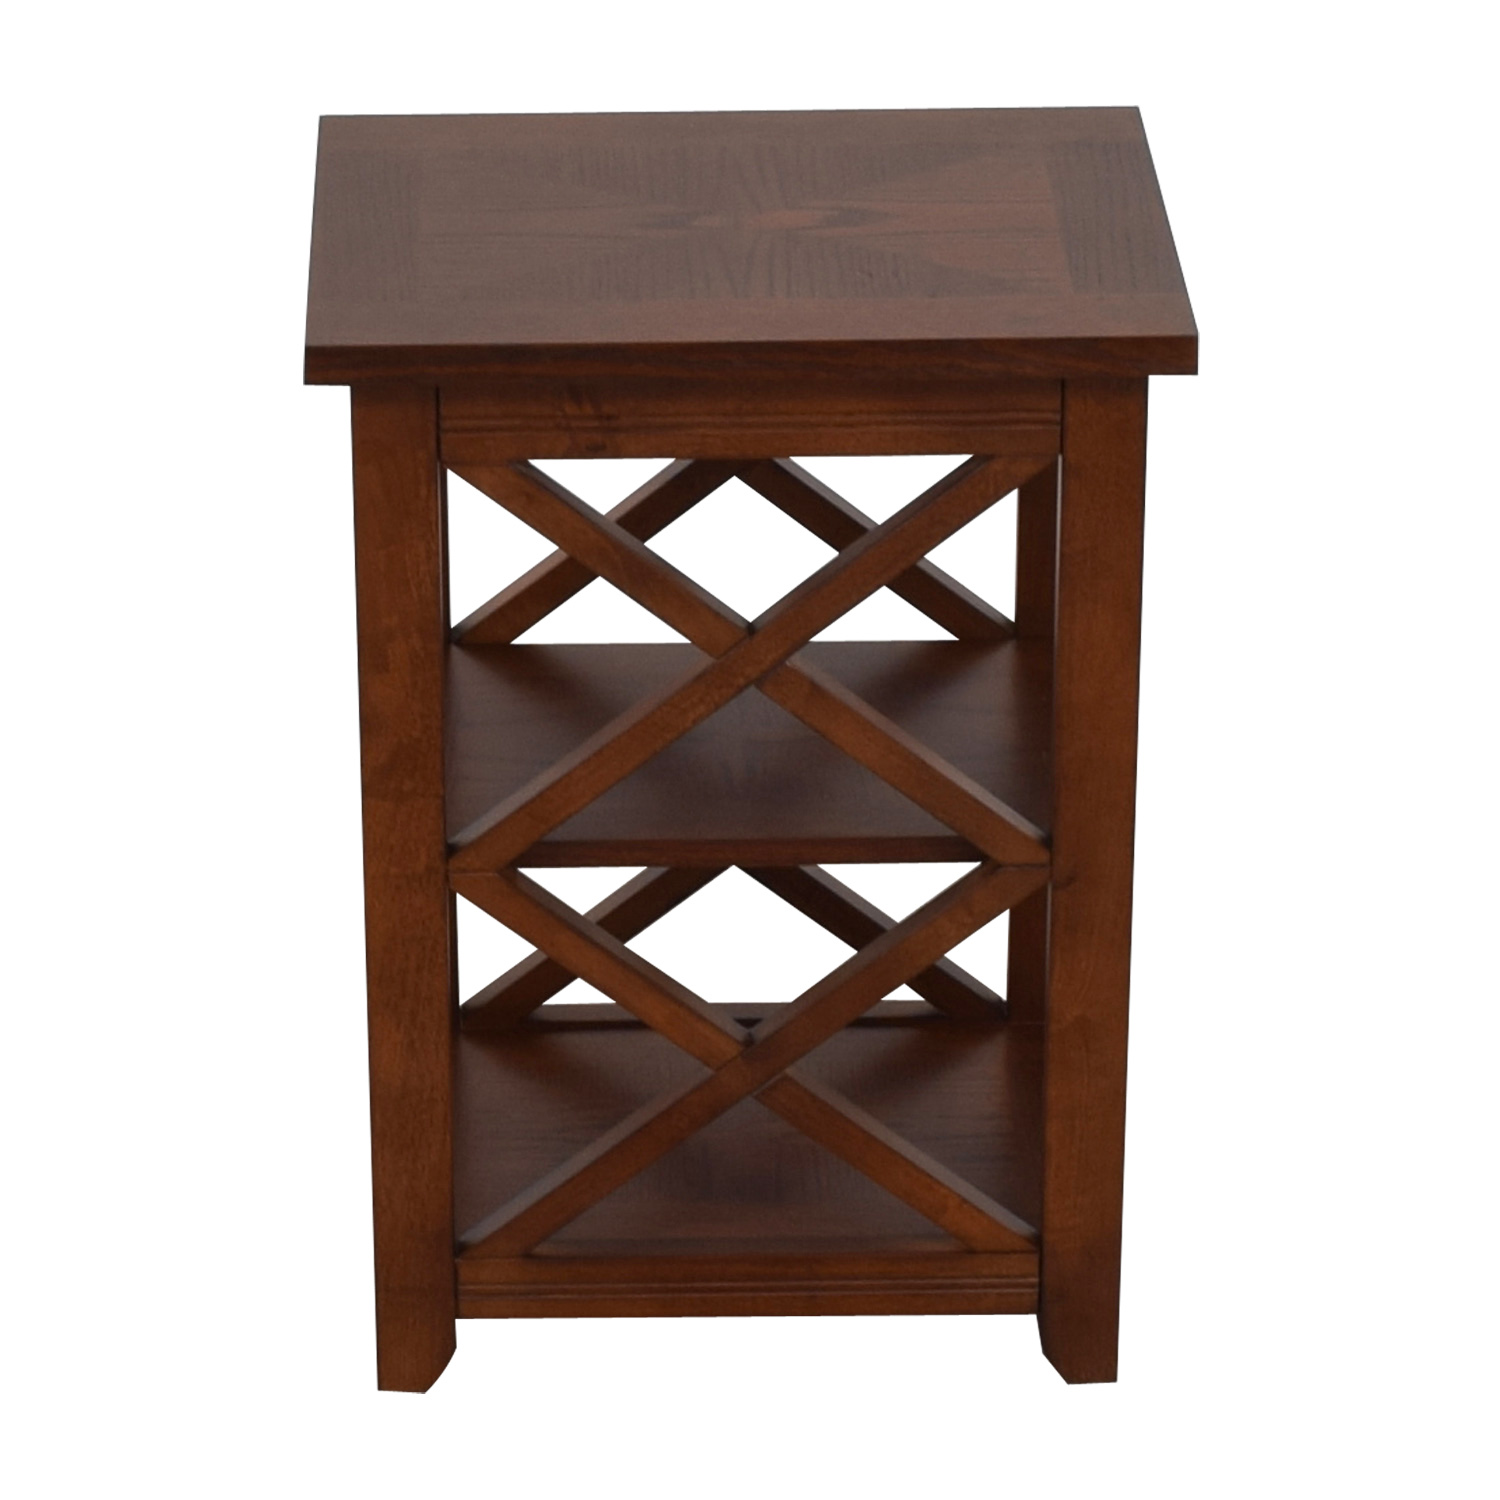 Raymour & Flanigan Raymour & Flanigan Tucson Side Table brown